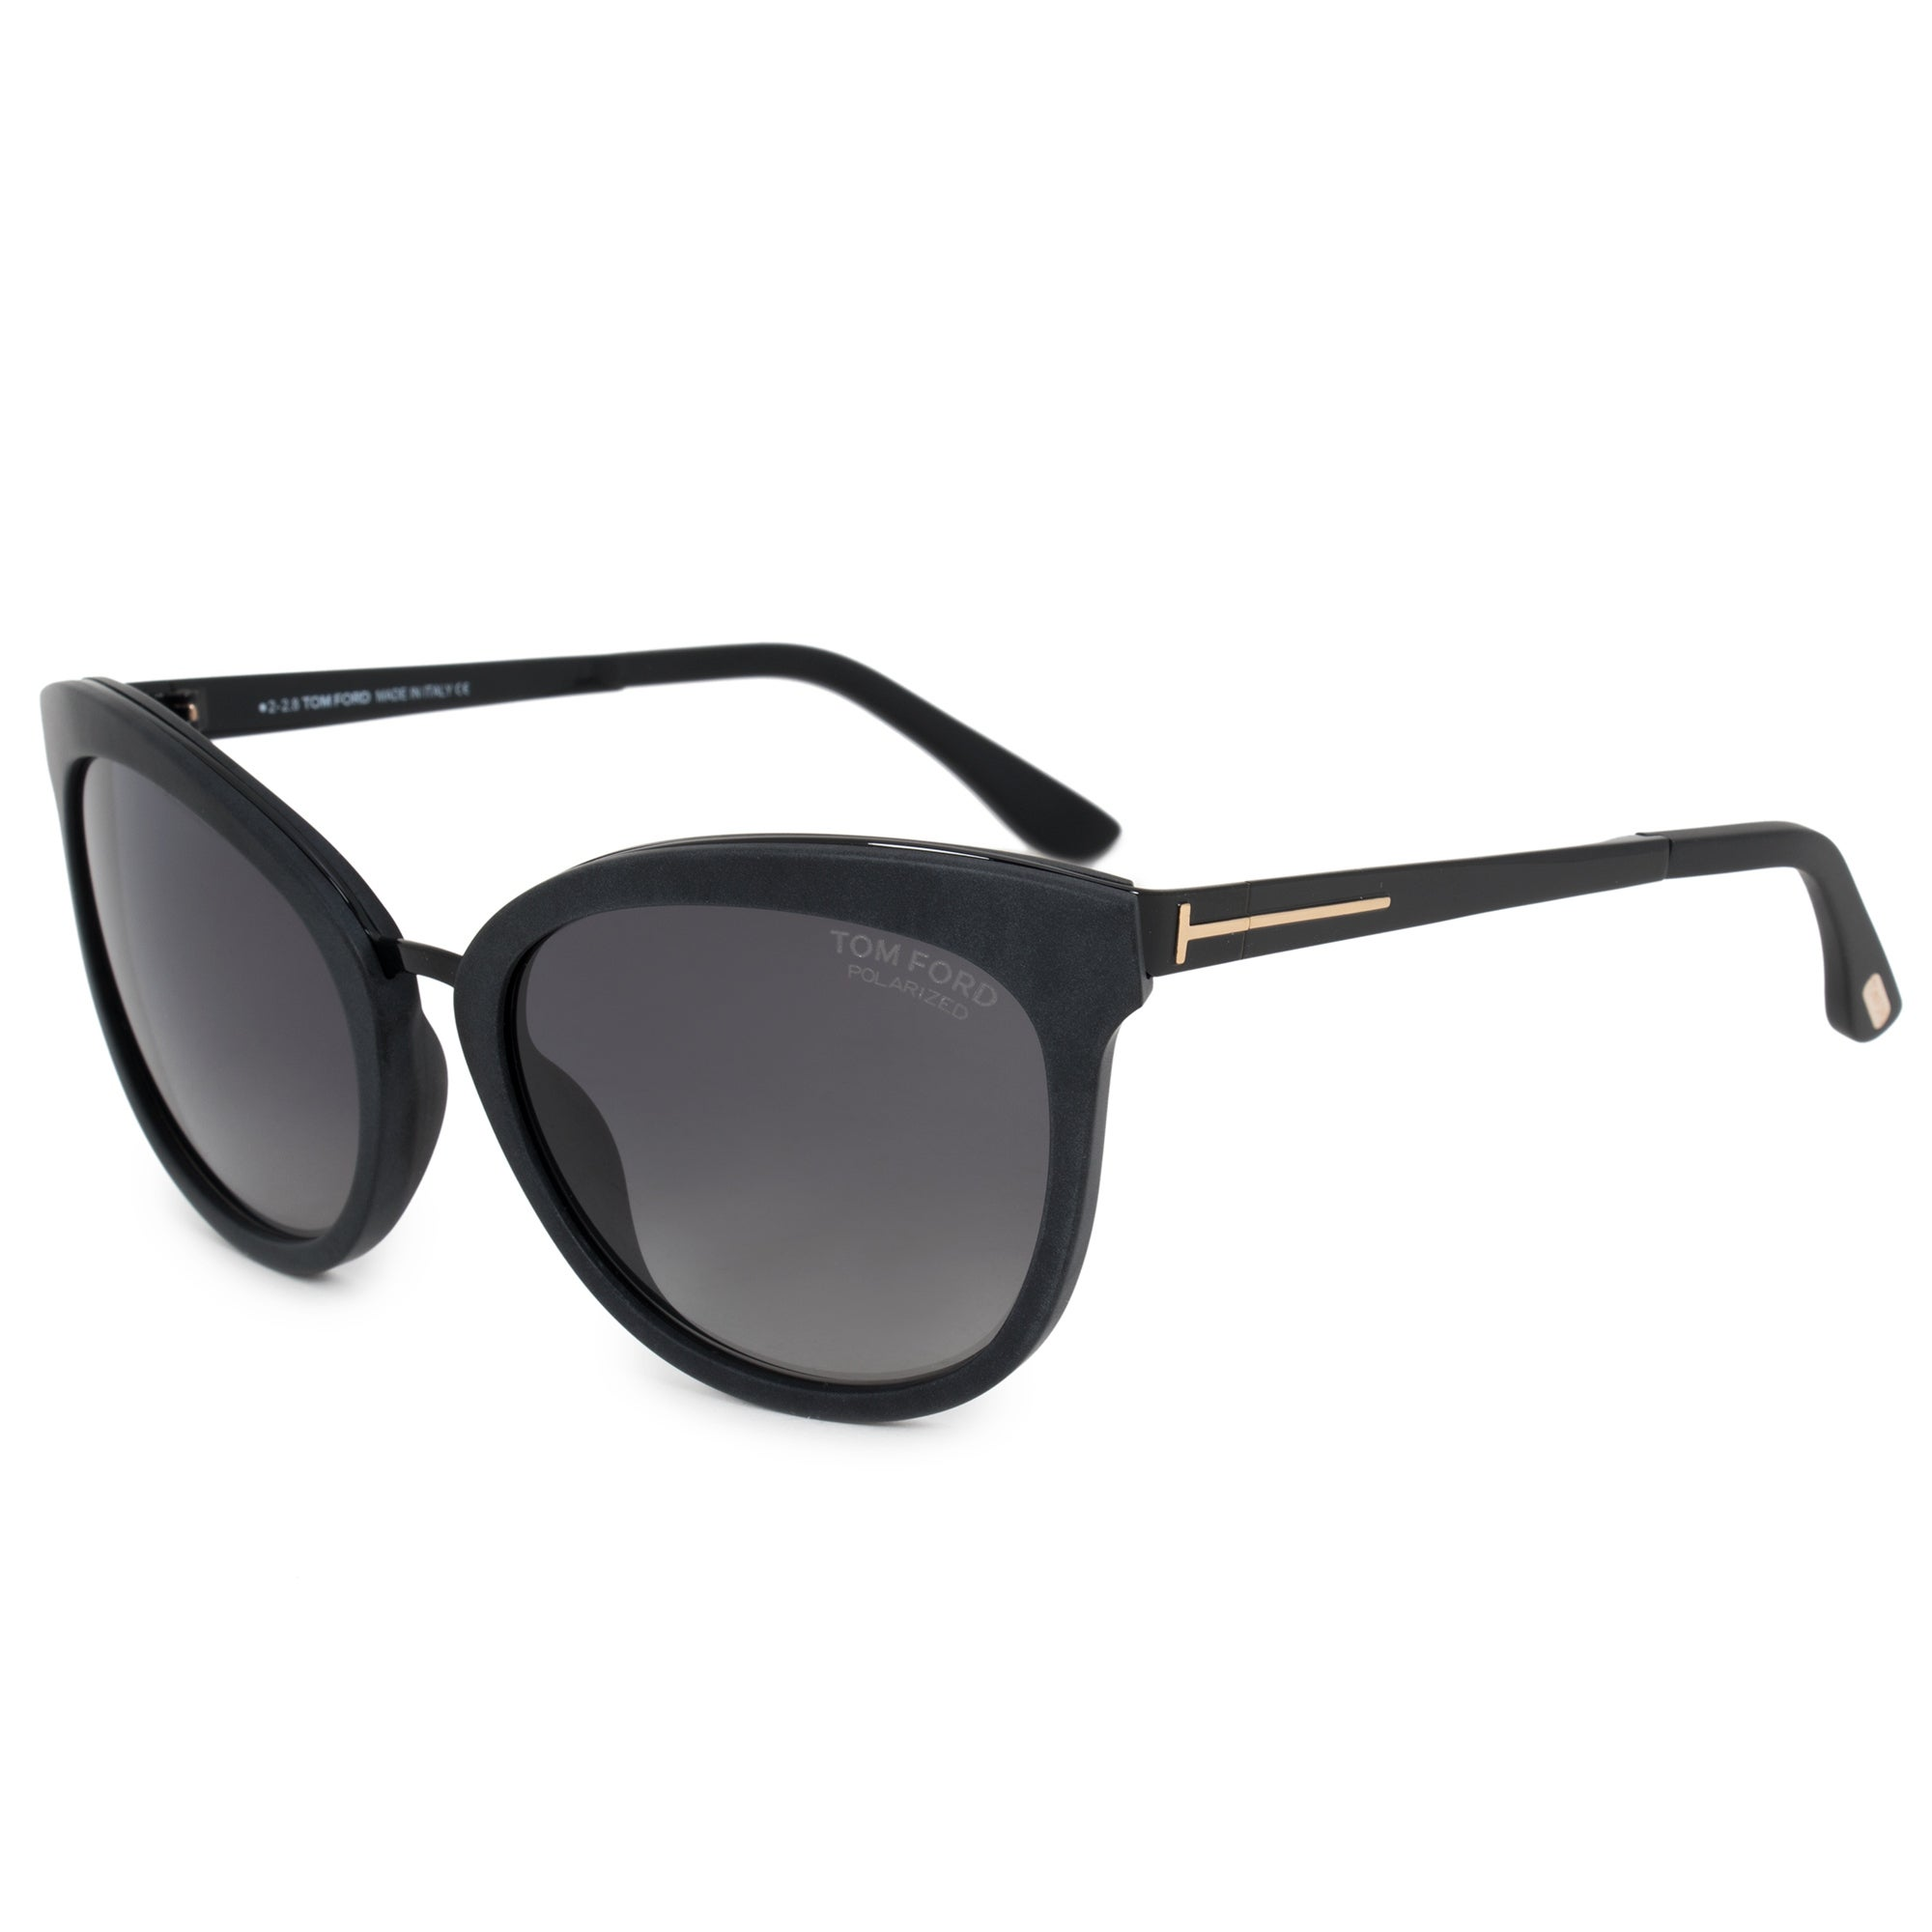 348e4755e17 Shop Tom Ford Emma Cat Eye Sunglasses FT0461 02D 56 - Free Shipping Today -  Overstock - 25494049